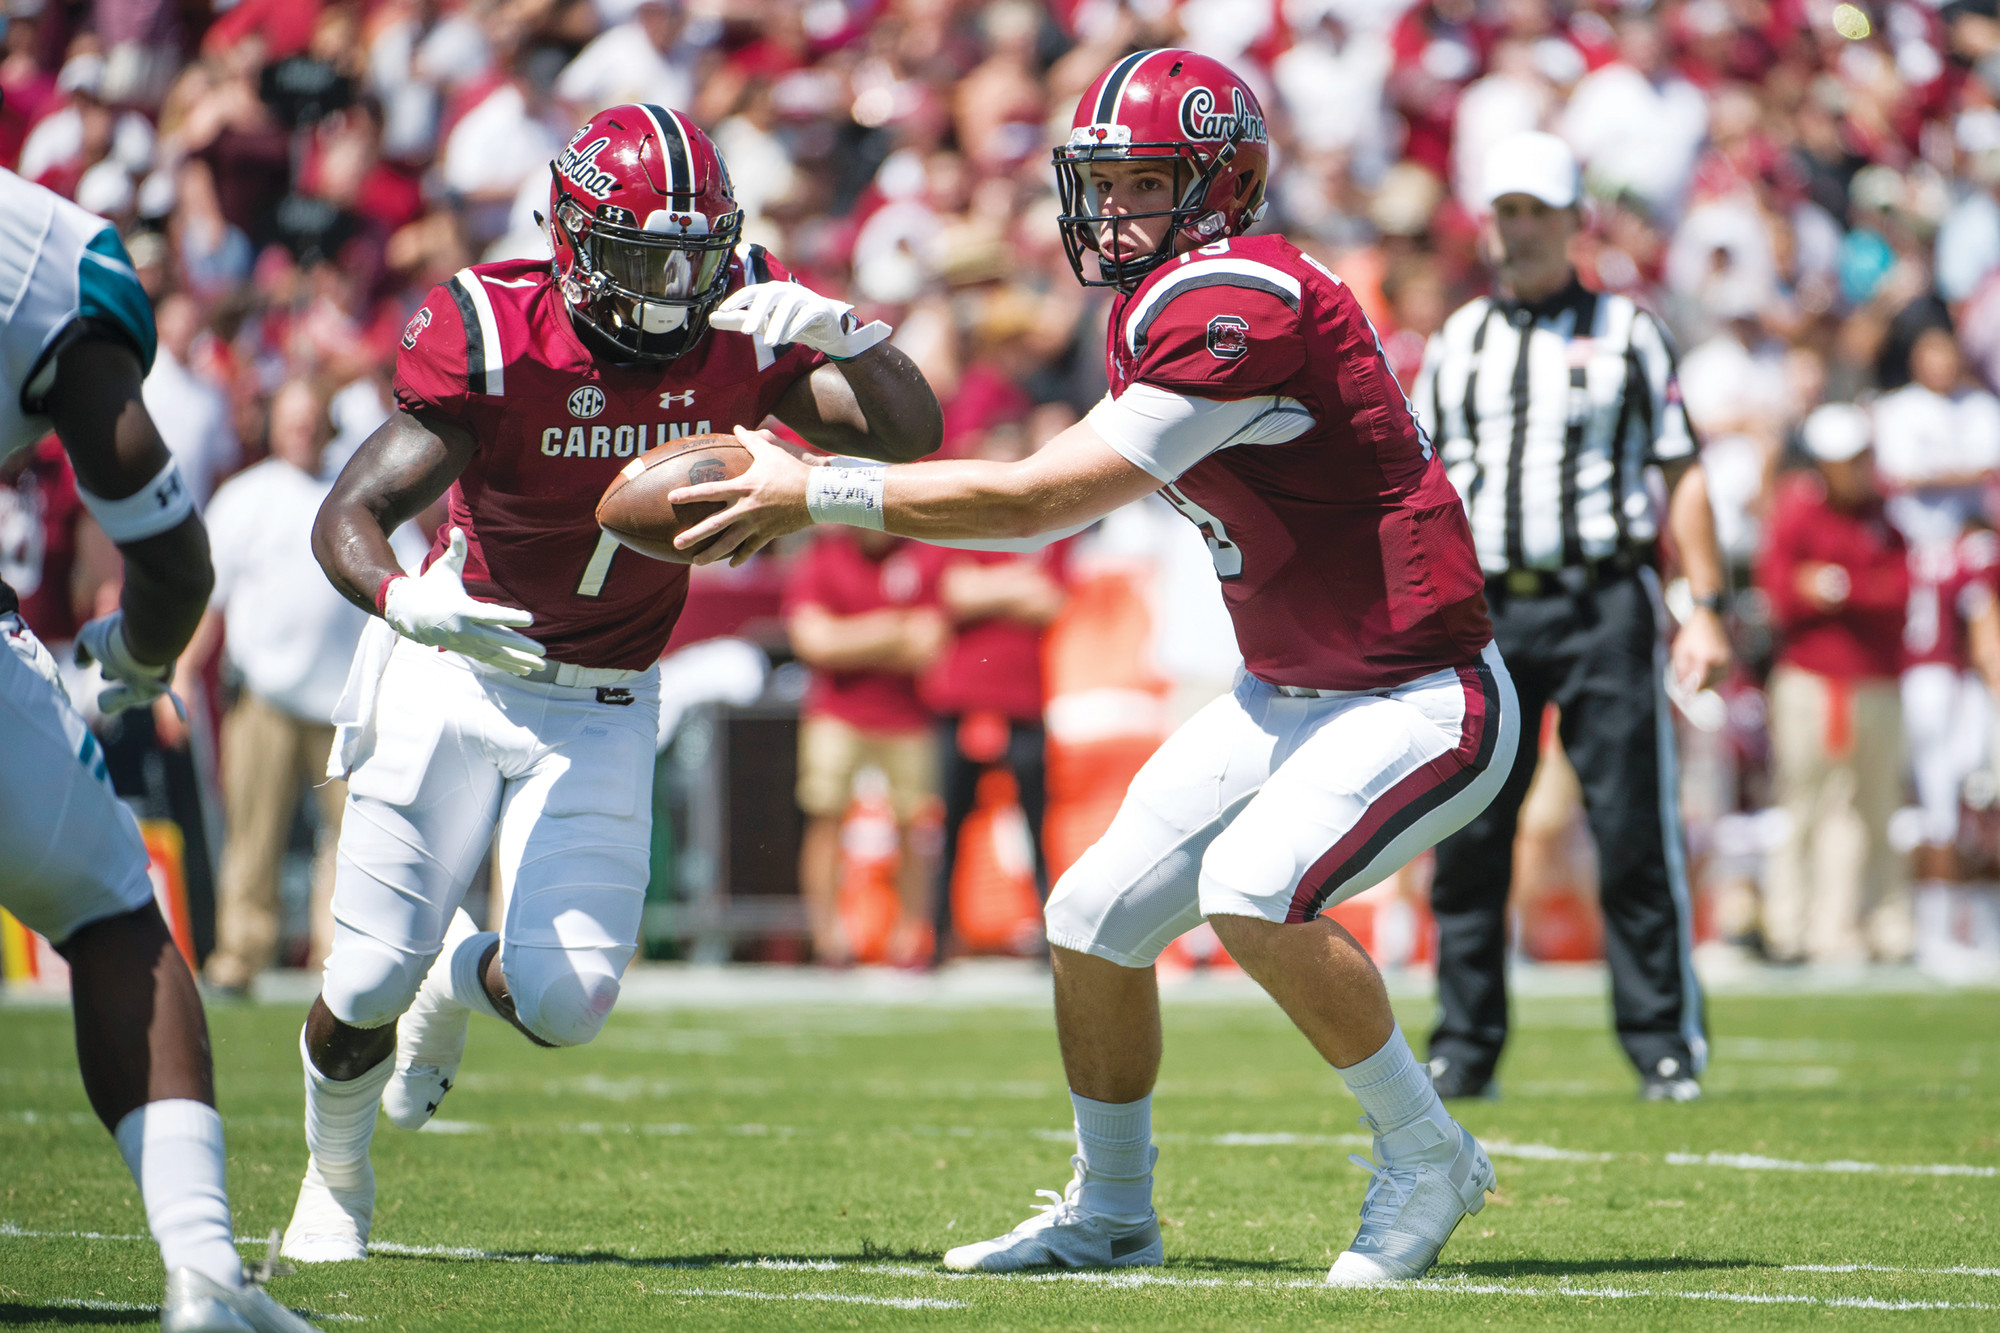 South Carolina quarterback Jake Bentley (19) hands off to wide receiver Deebo Samuel (1) during the first half of the Gamecocks 49-15 victory over Coastal Carolina on Saturday in Columbia.